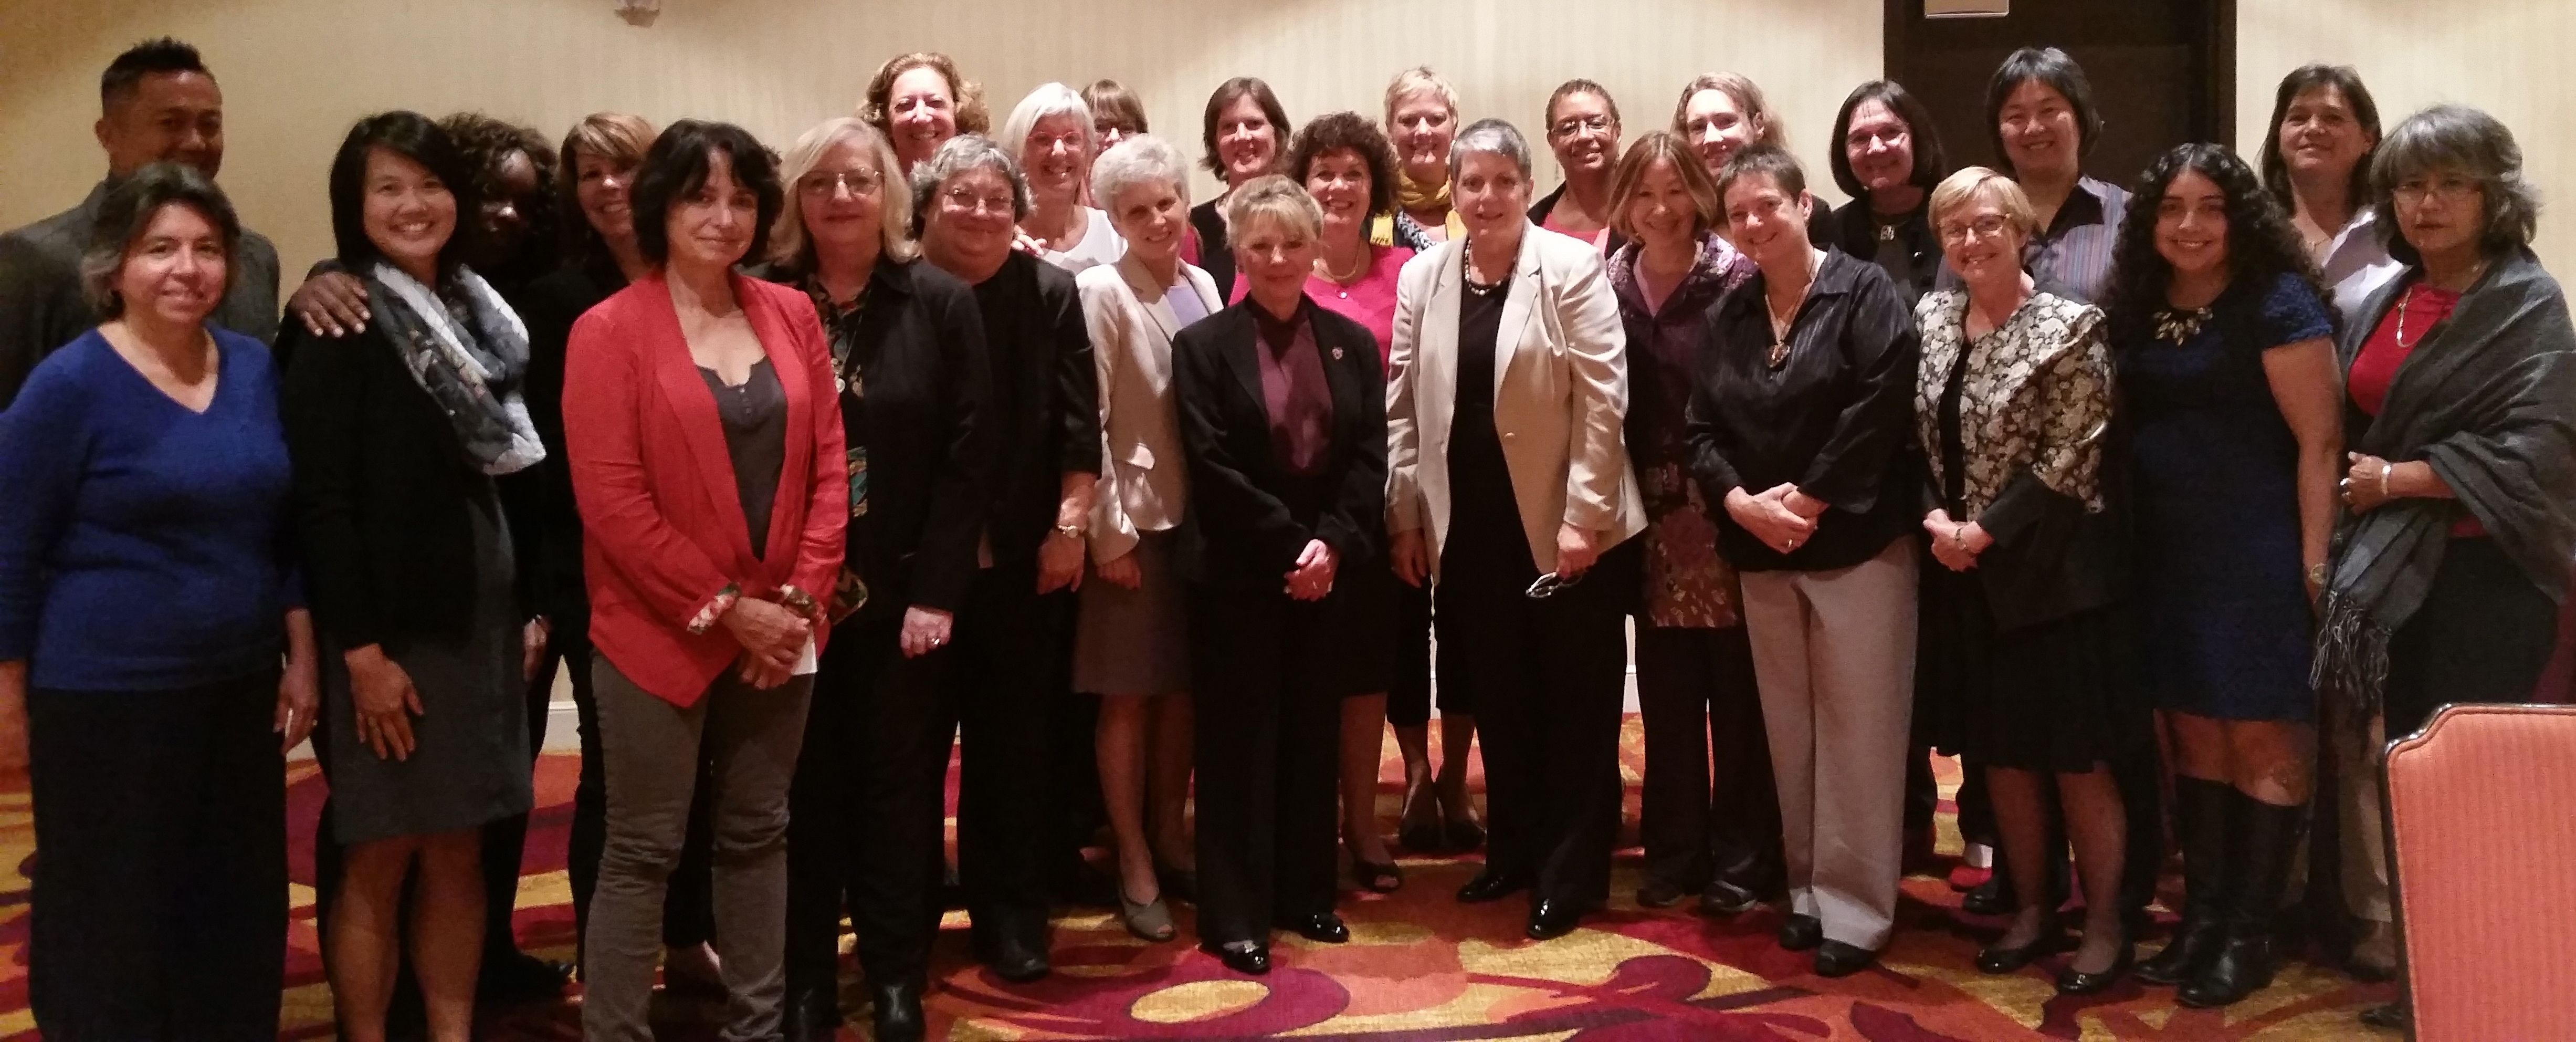 President Janet Napolitano with SACSW at the Fall 2014 meeting